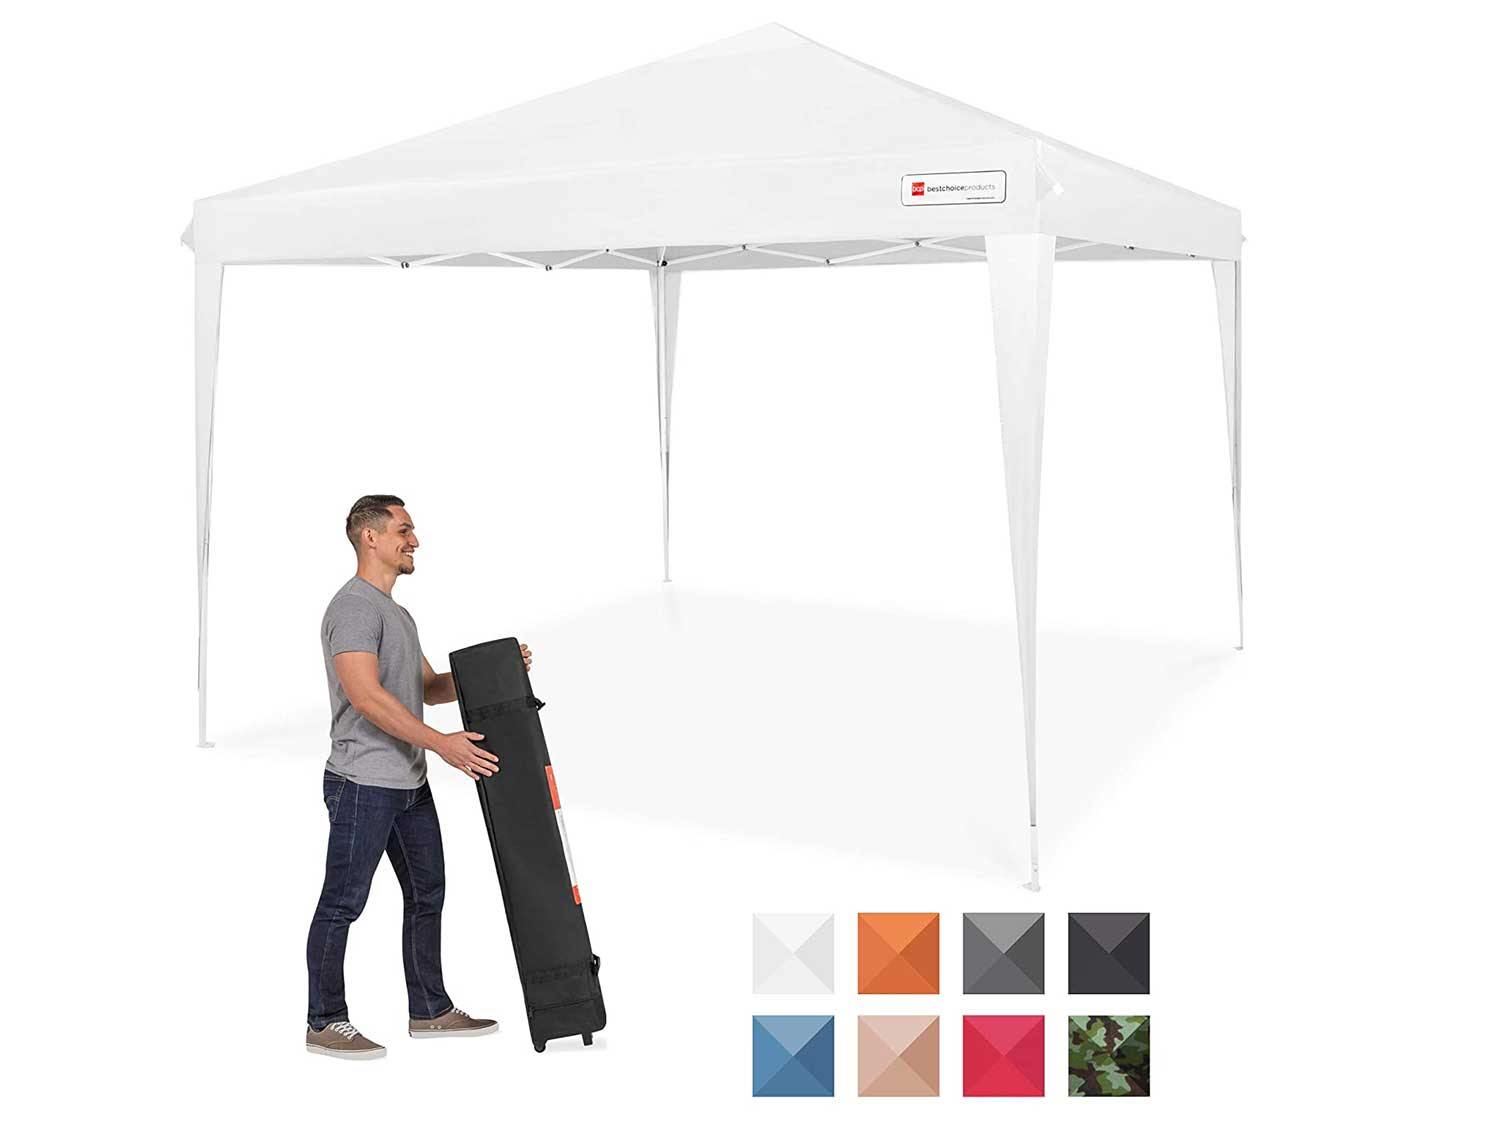 Best Choice Products Outdoor Portable Adjustable Instant Pop Up Gazebo Canopy Tent w/Carrying Bag, 10x10ft - White